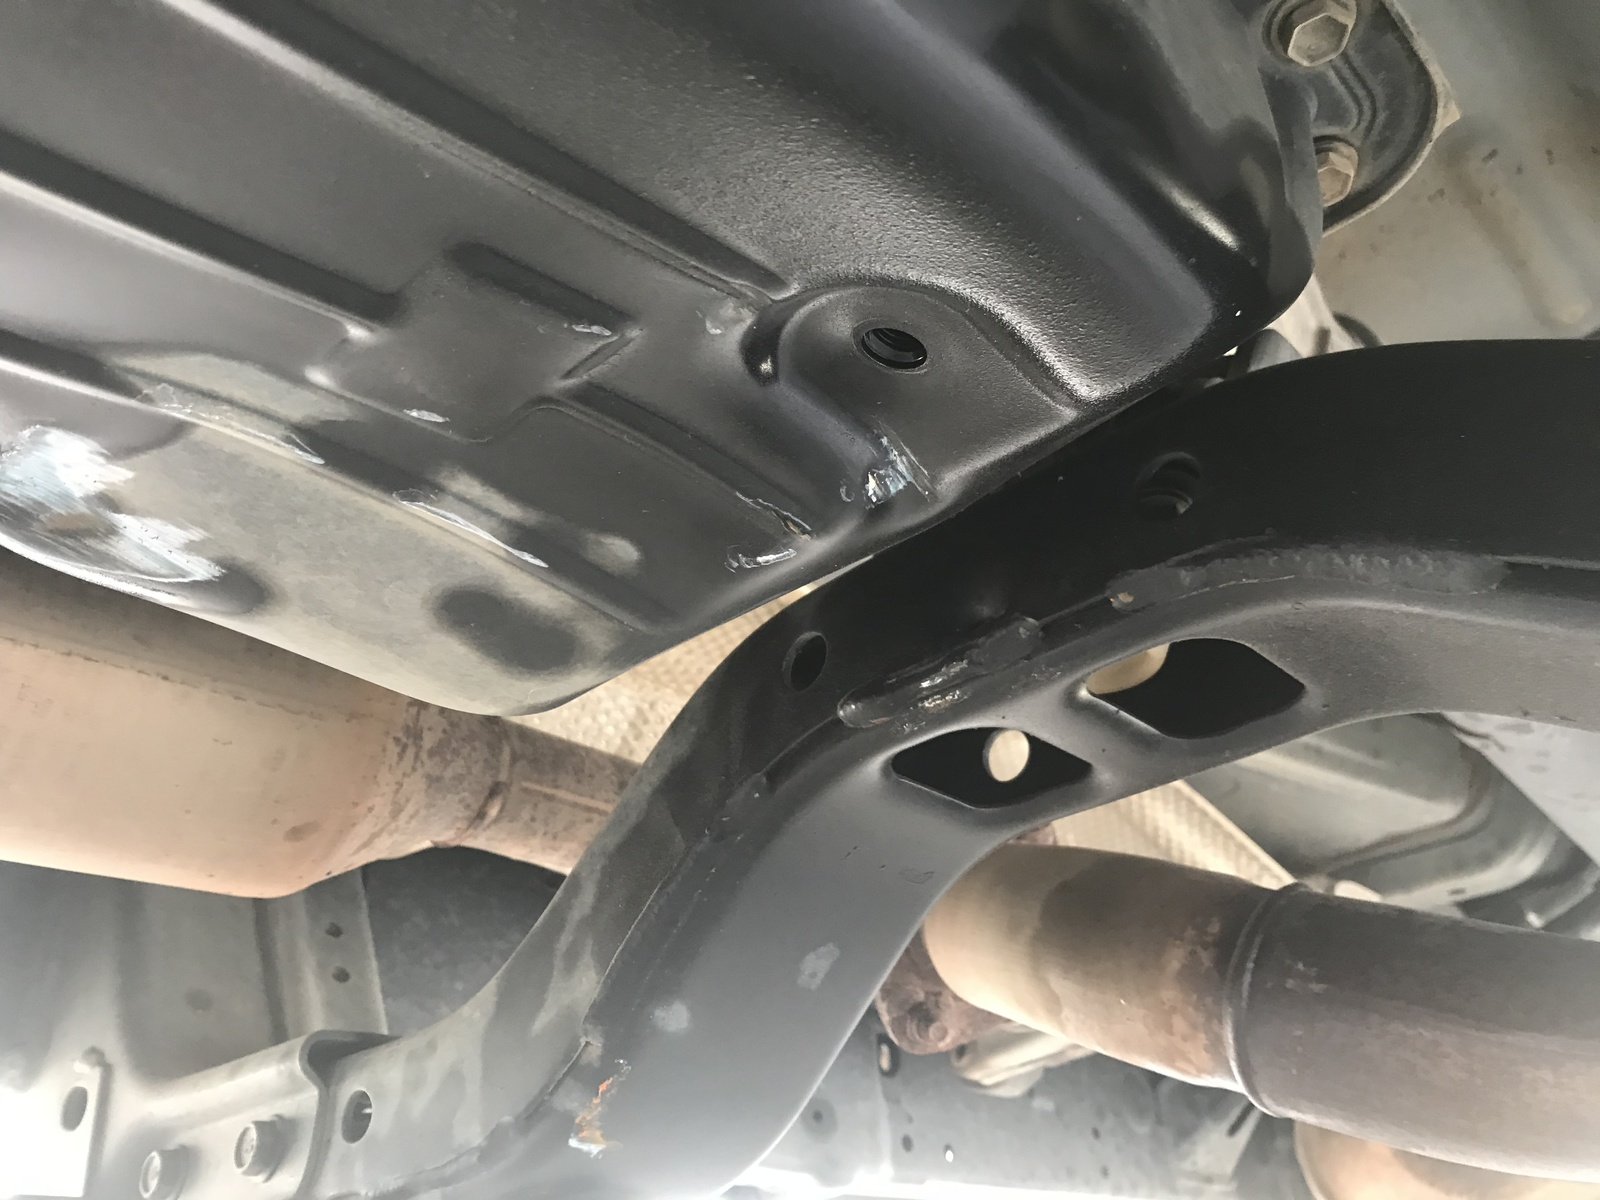 Toyota 4Runner Questions - How many quarts of transmission